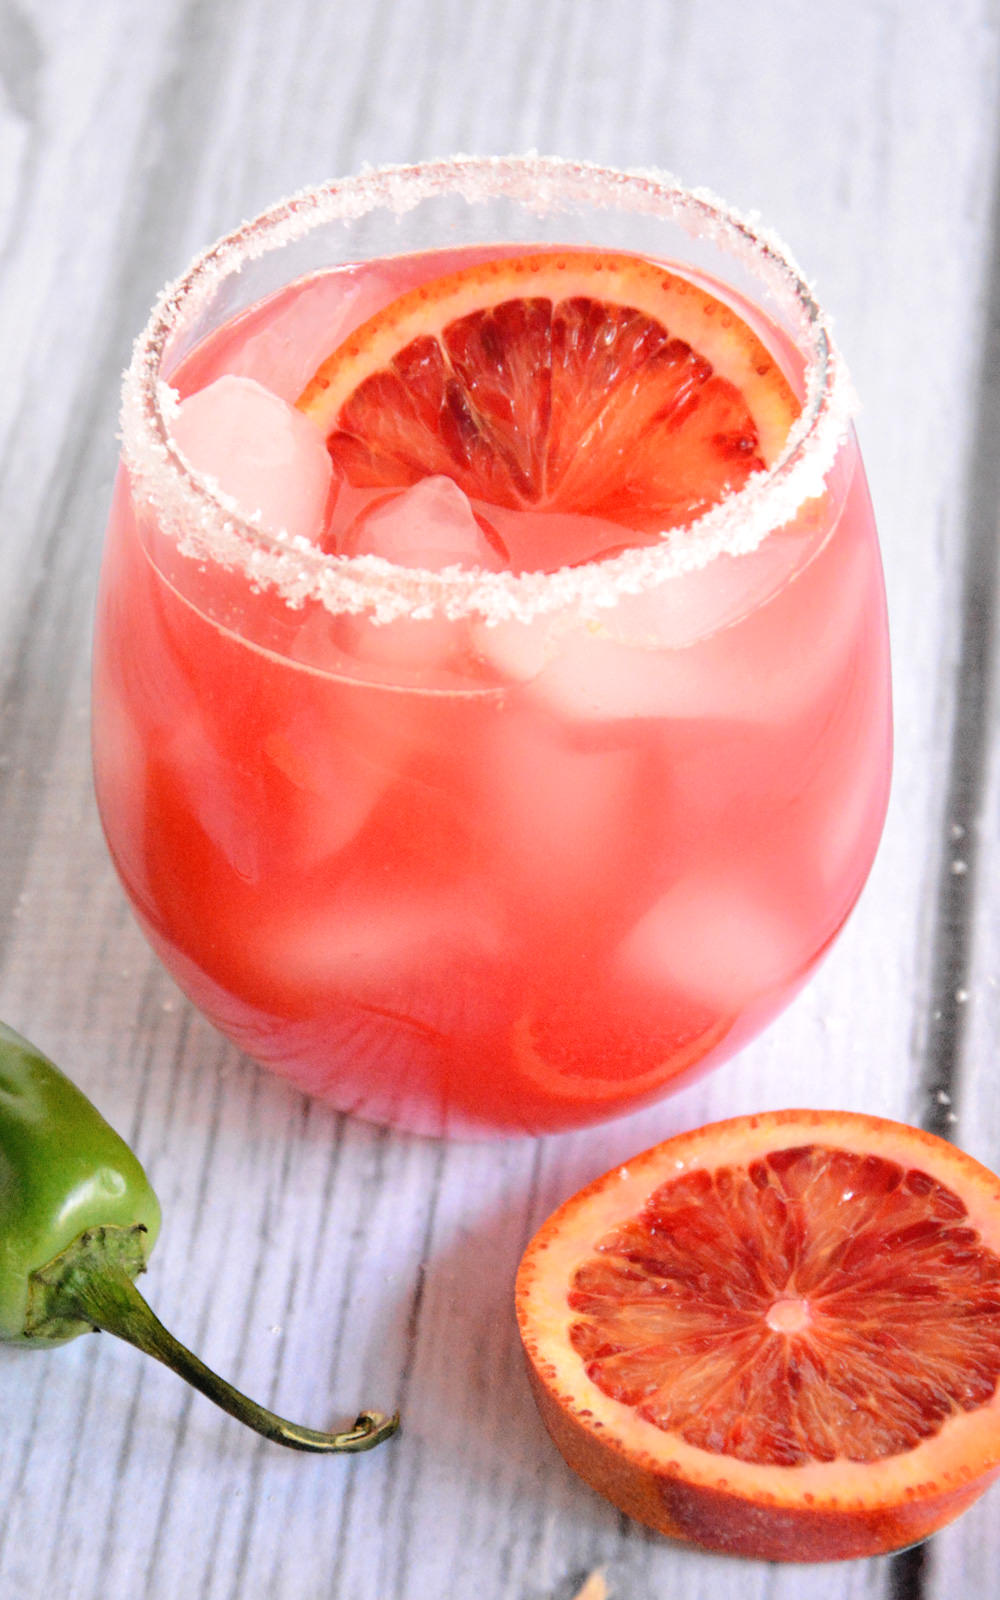 This Blood Orange Margarita Recipe is a refreshing twist on a classic margarita with fresh blood orange juice, triple sec, and fresh lime juice!